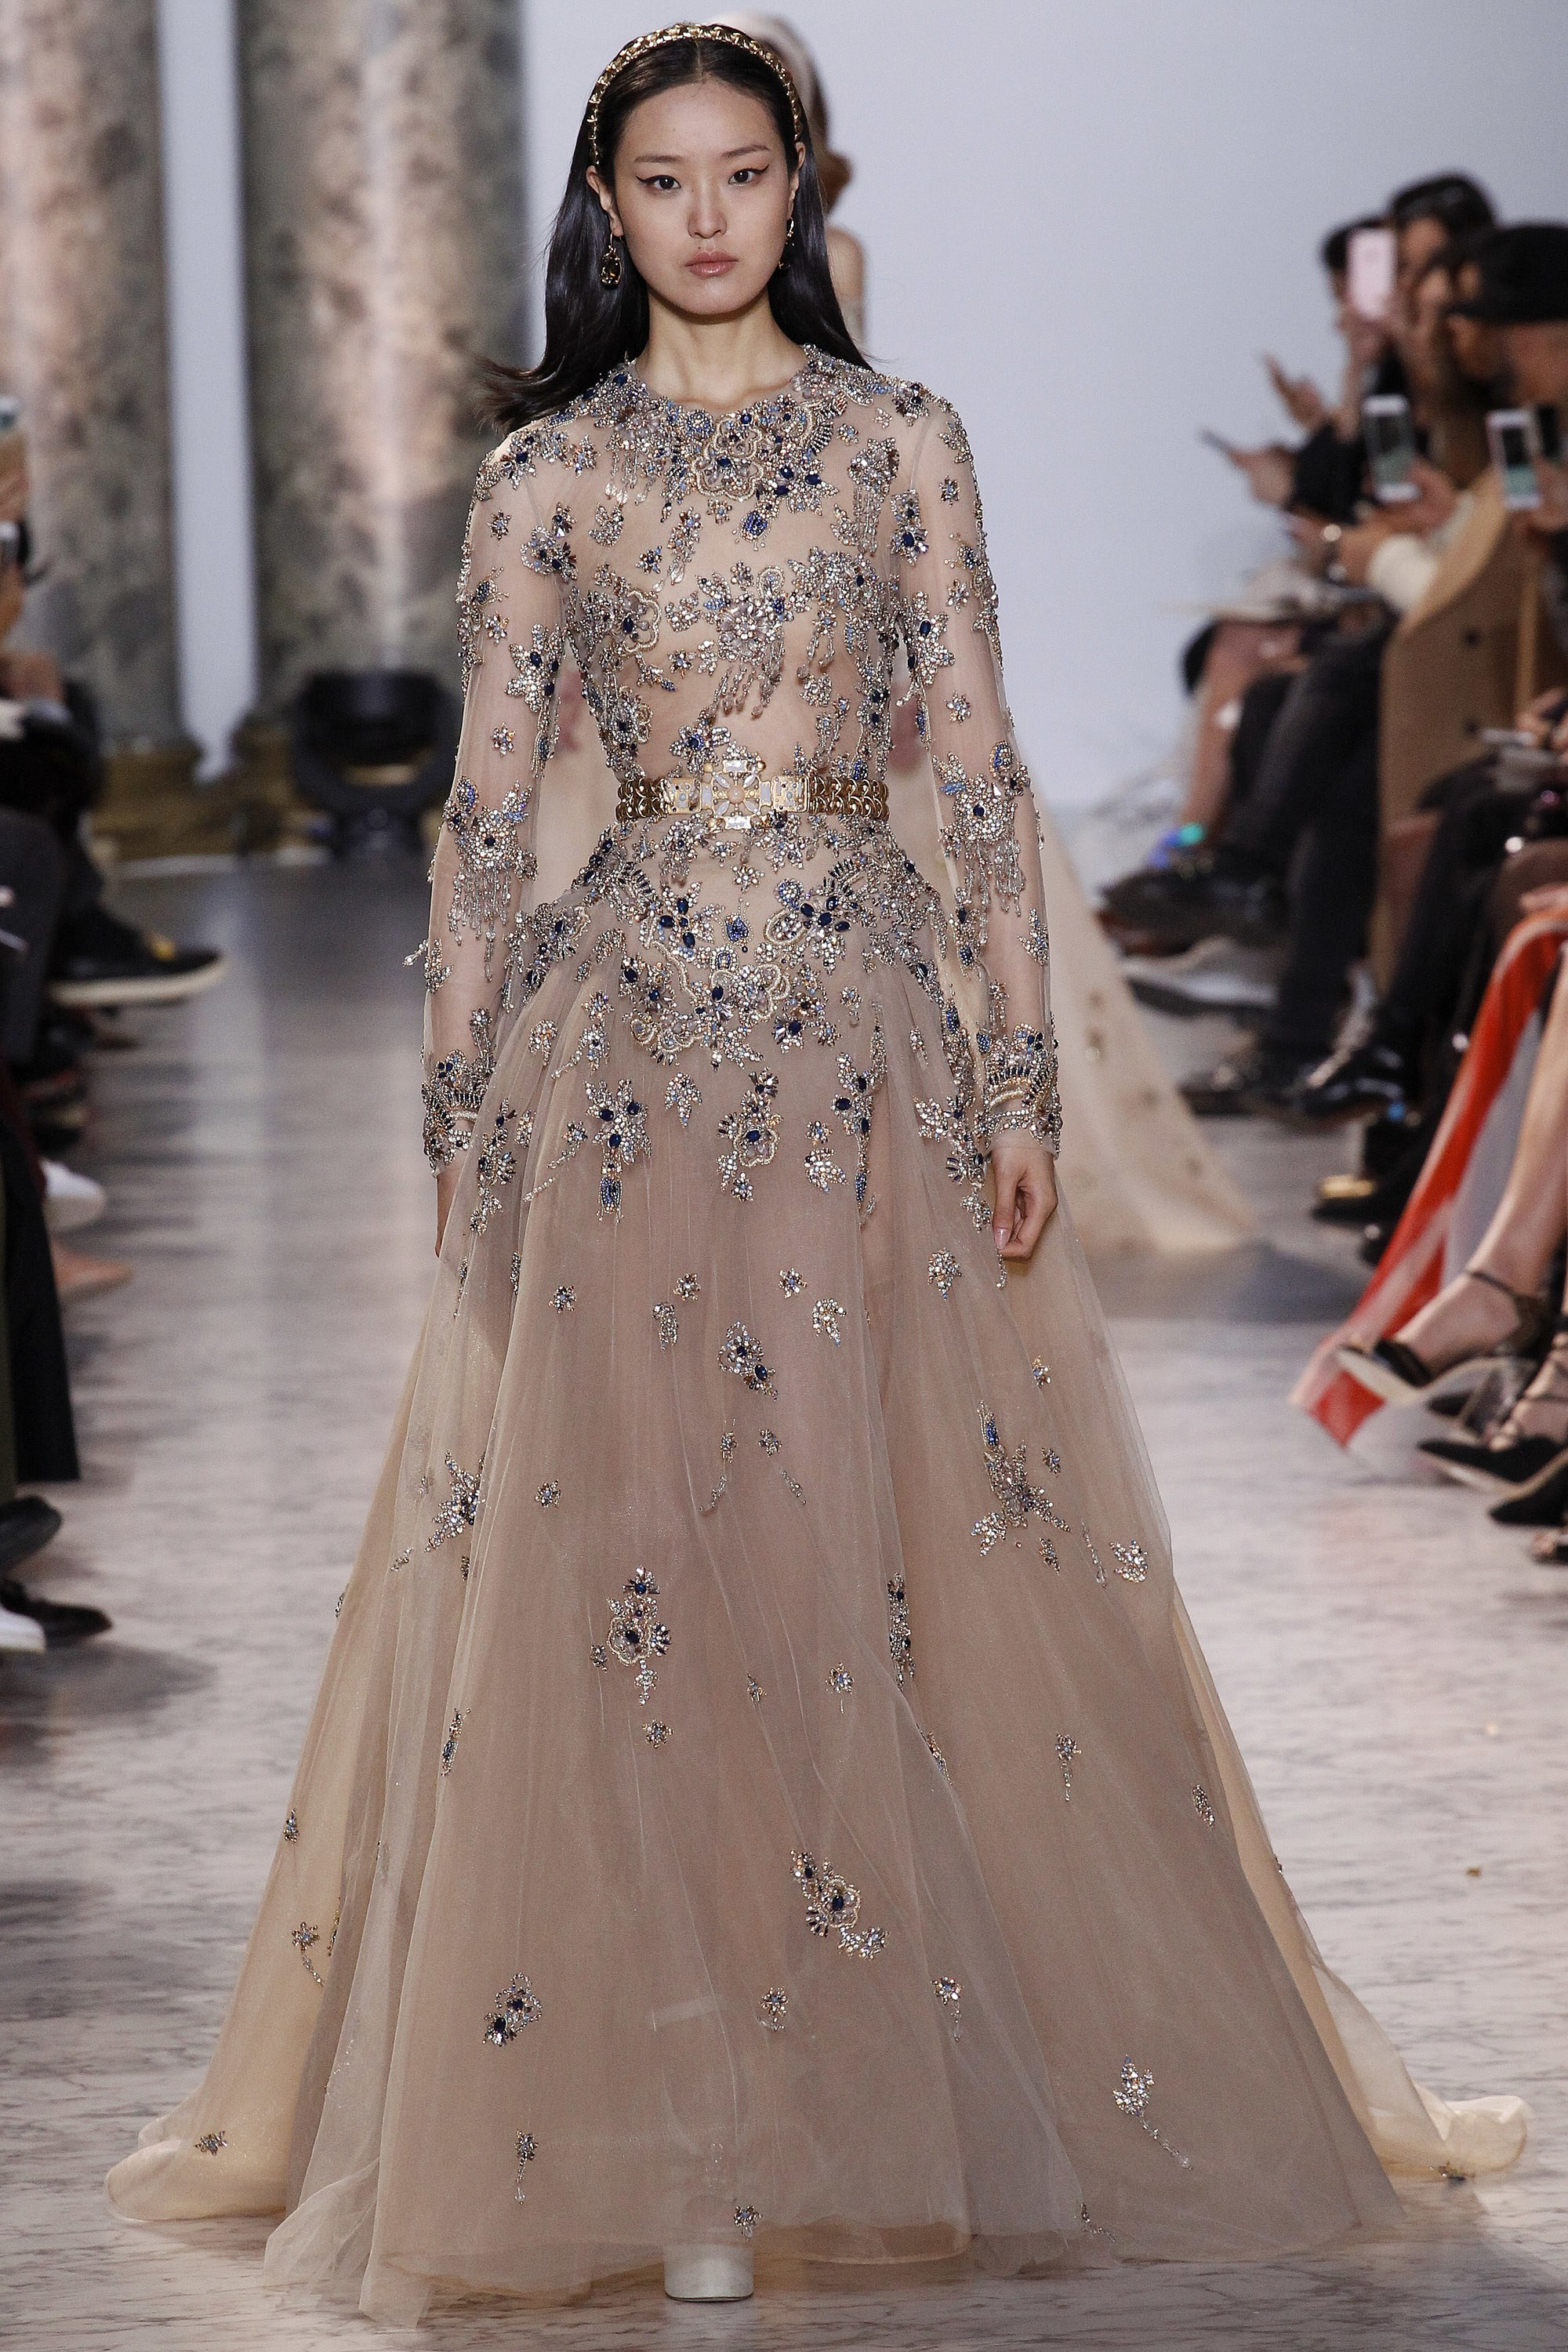 Asian Model in Elie Saab Gown